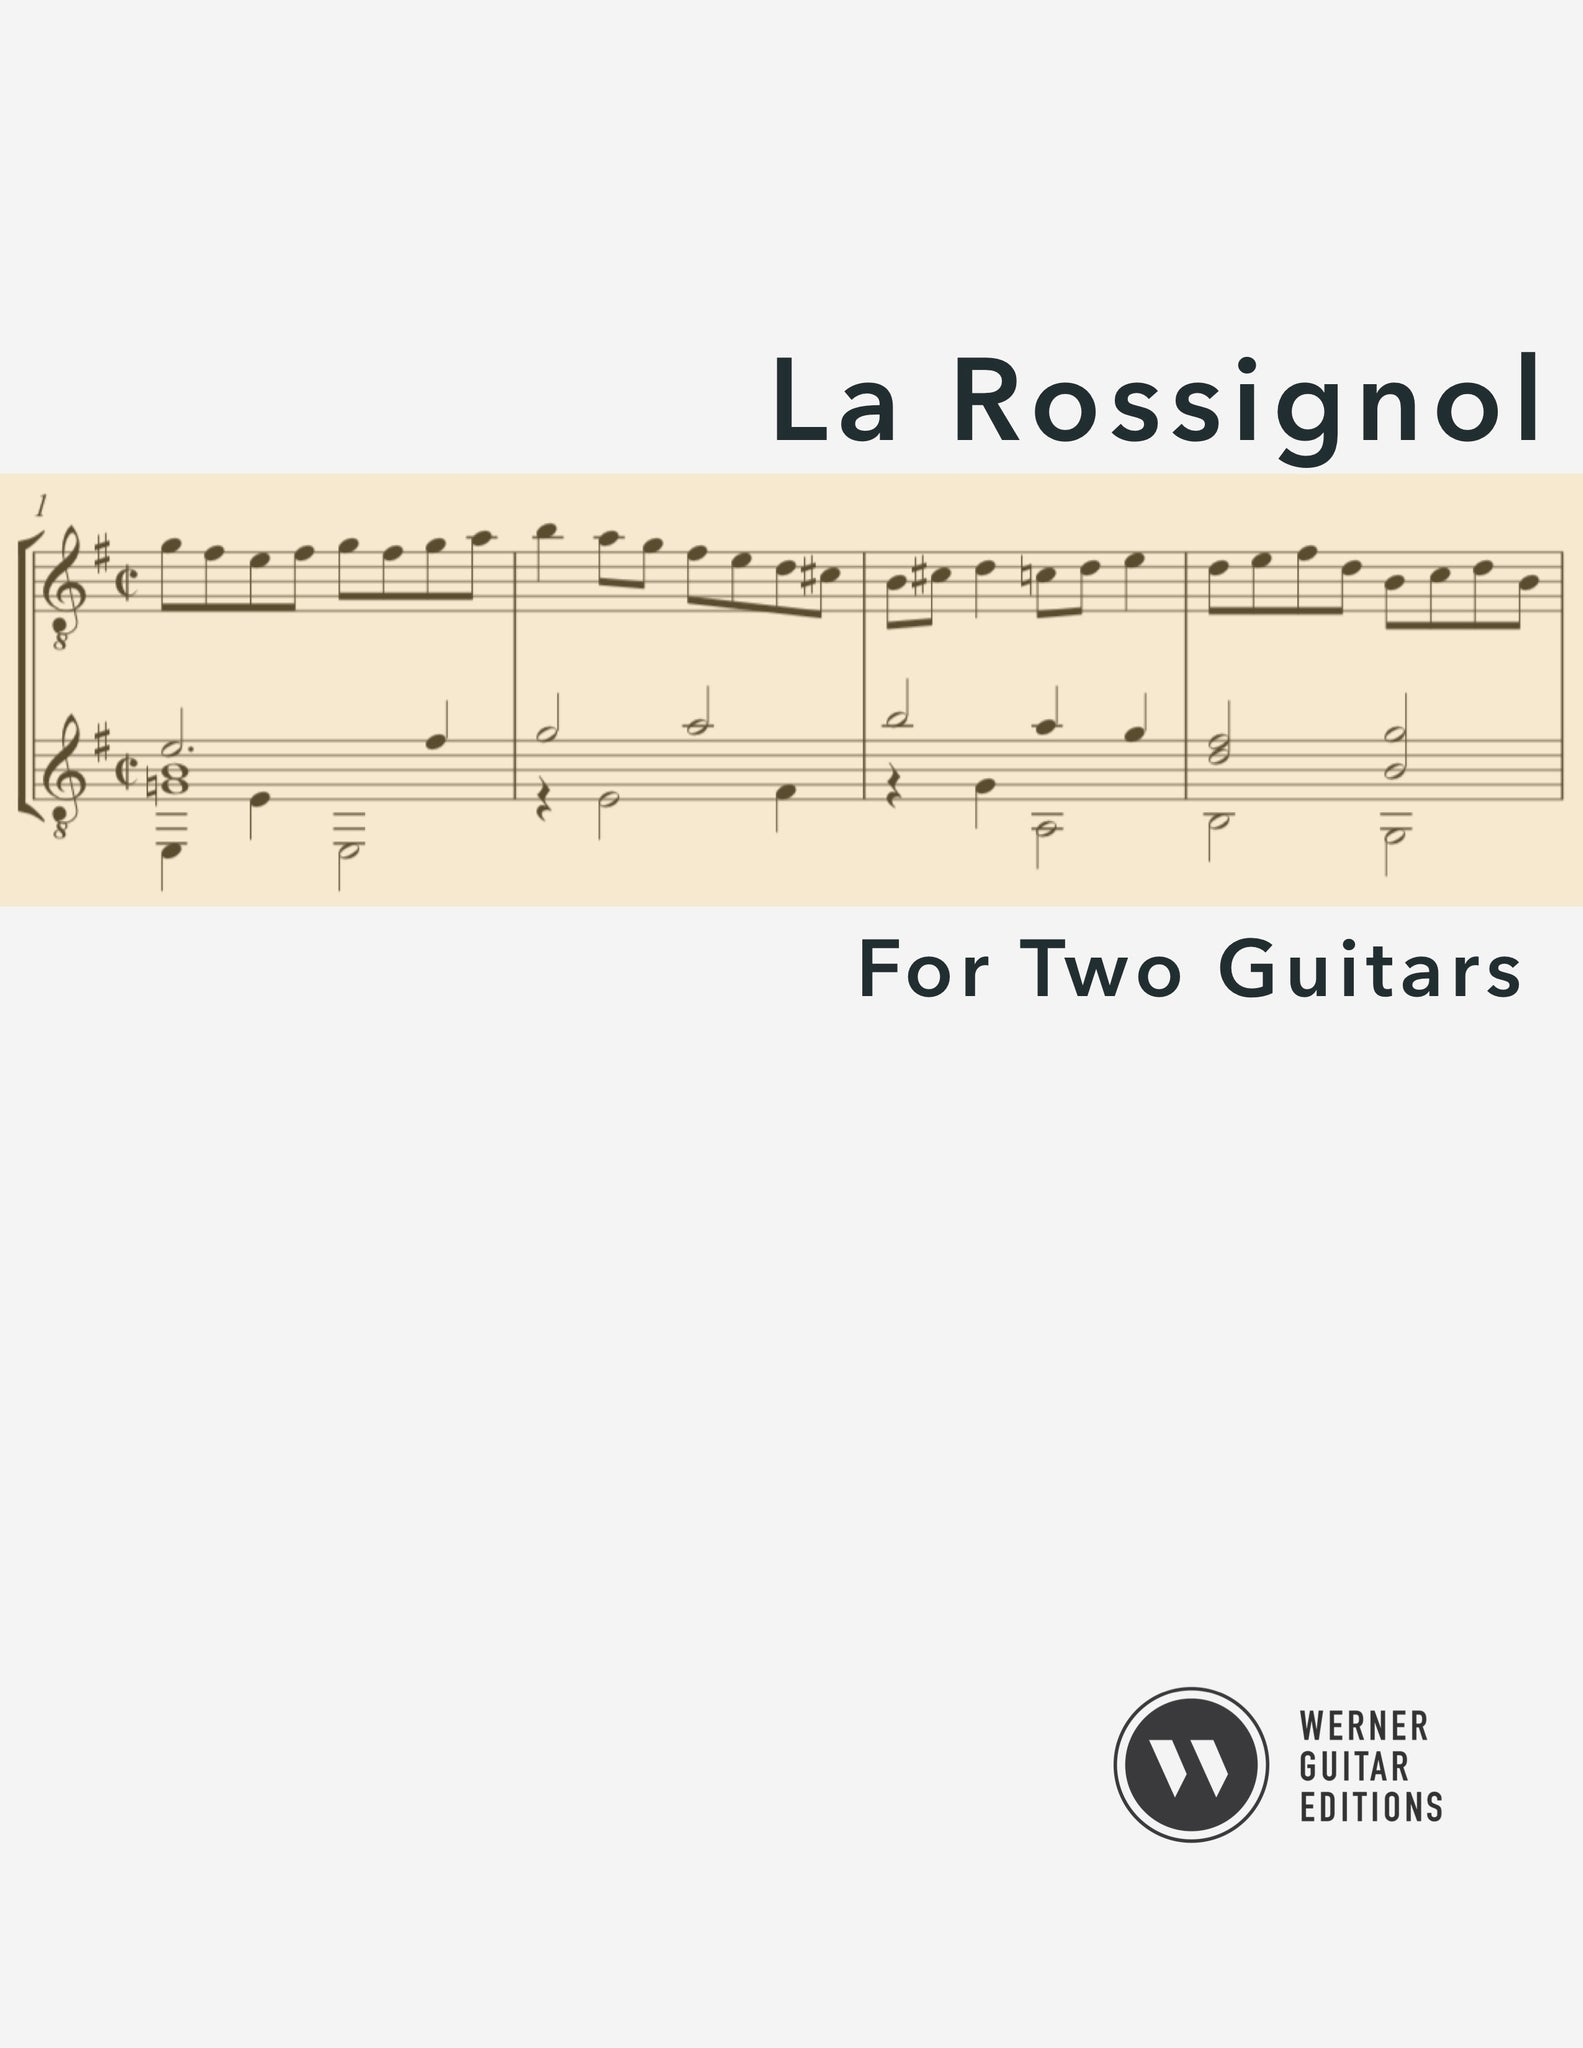 La Rossignol (Anonymous) - Guitar Duet (PDF)